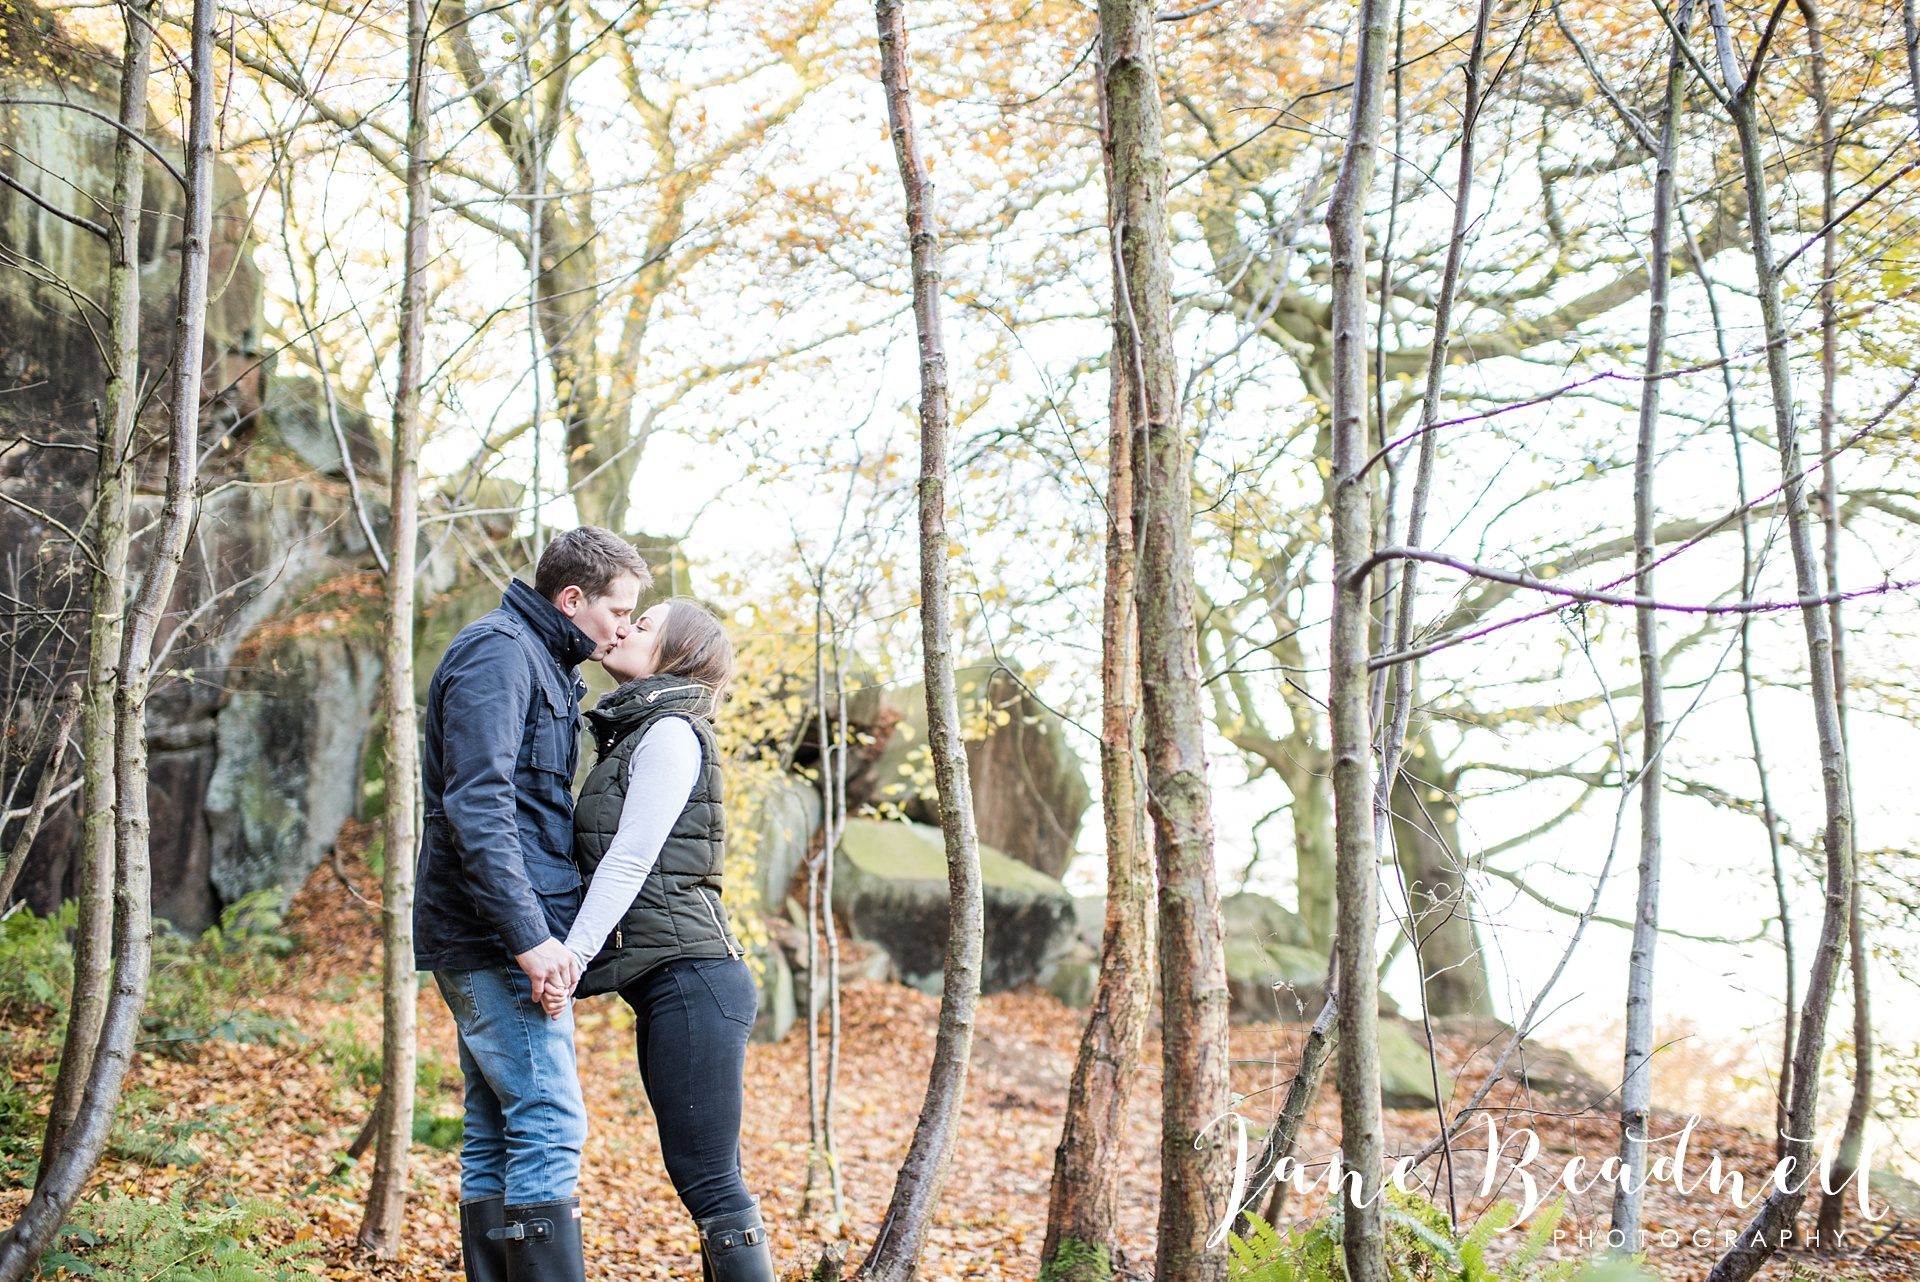 engagement-shoot-yorkshire-wedding-photographer-jane-beadnell-photography-uk-and-destination-wedding-photographer-engagement-shoot_0003